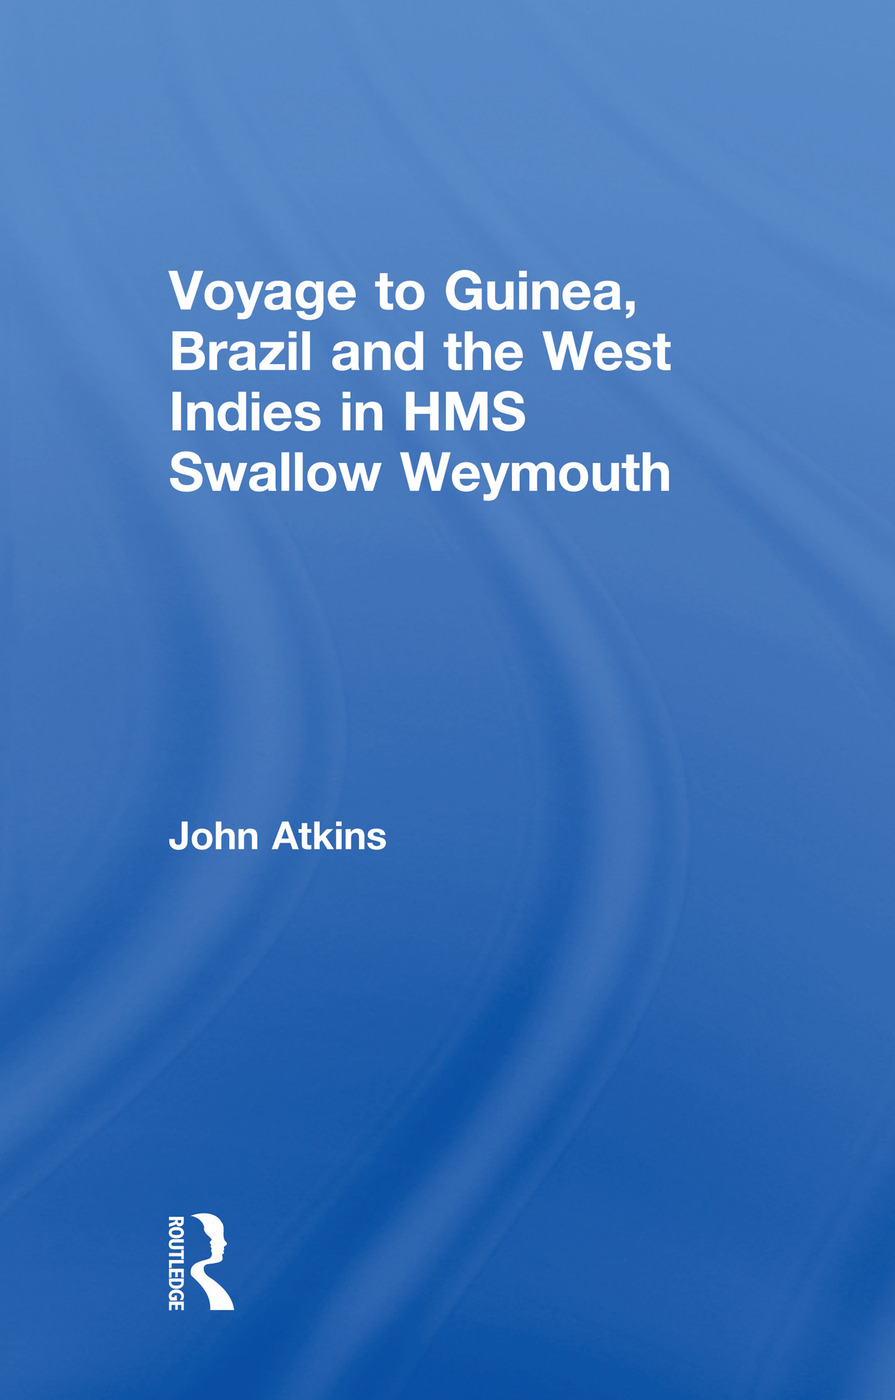 Voyage to Guinea, Brazil and the West Indies in HMS Swallow and Weymouth